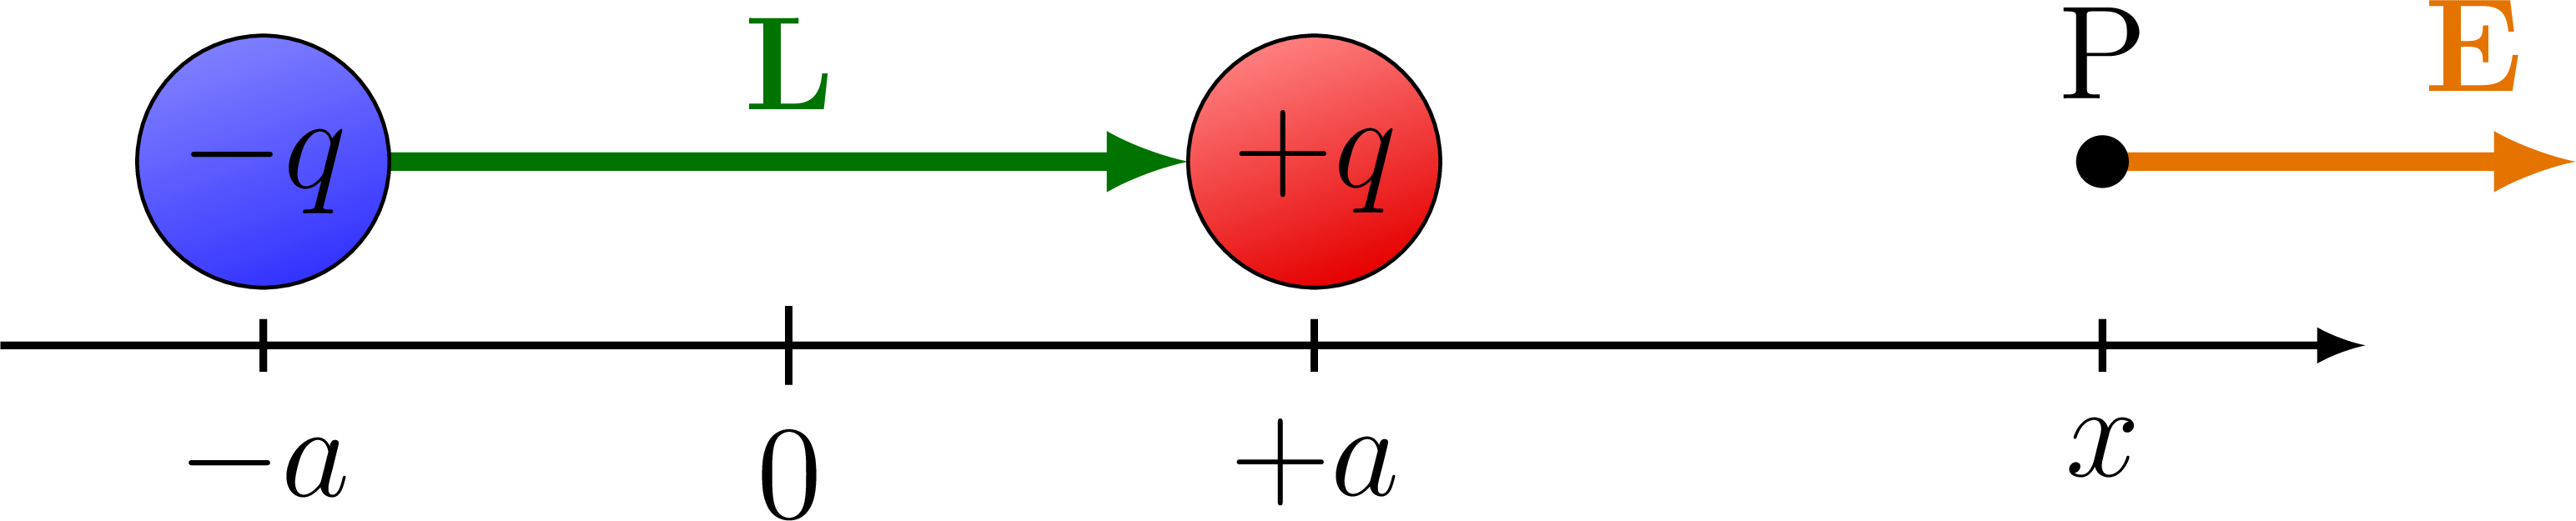 electric_dipole-002.png